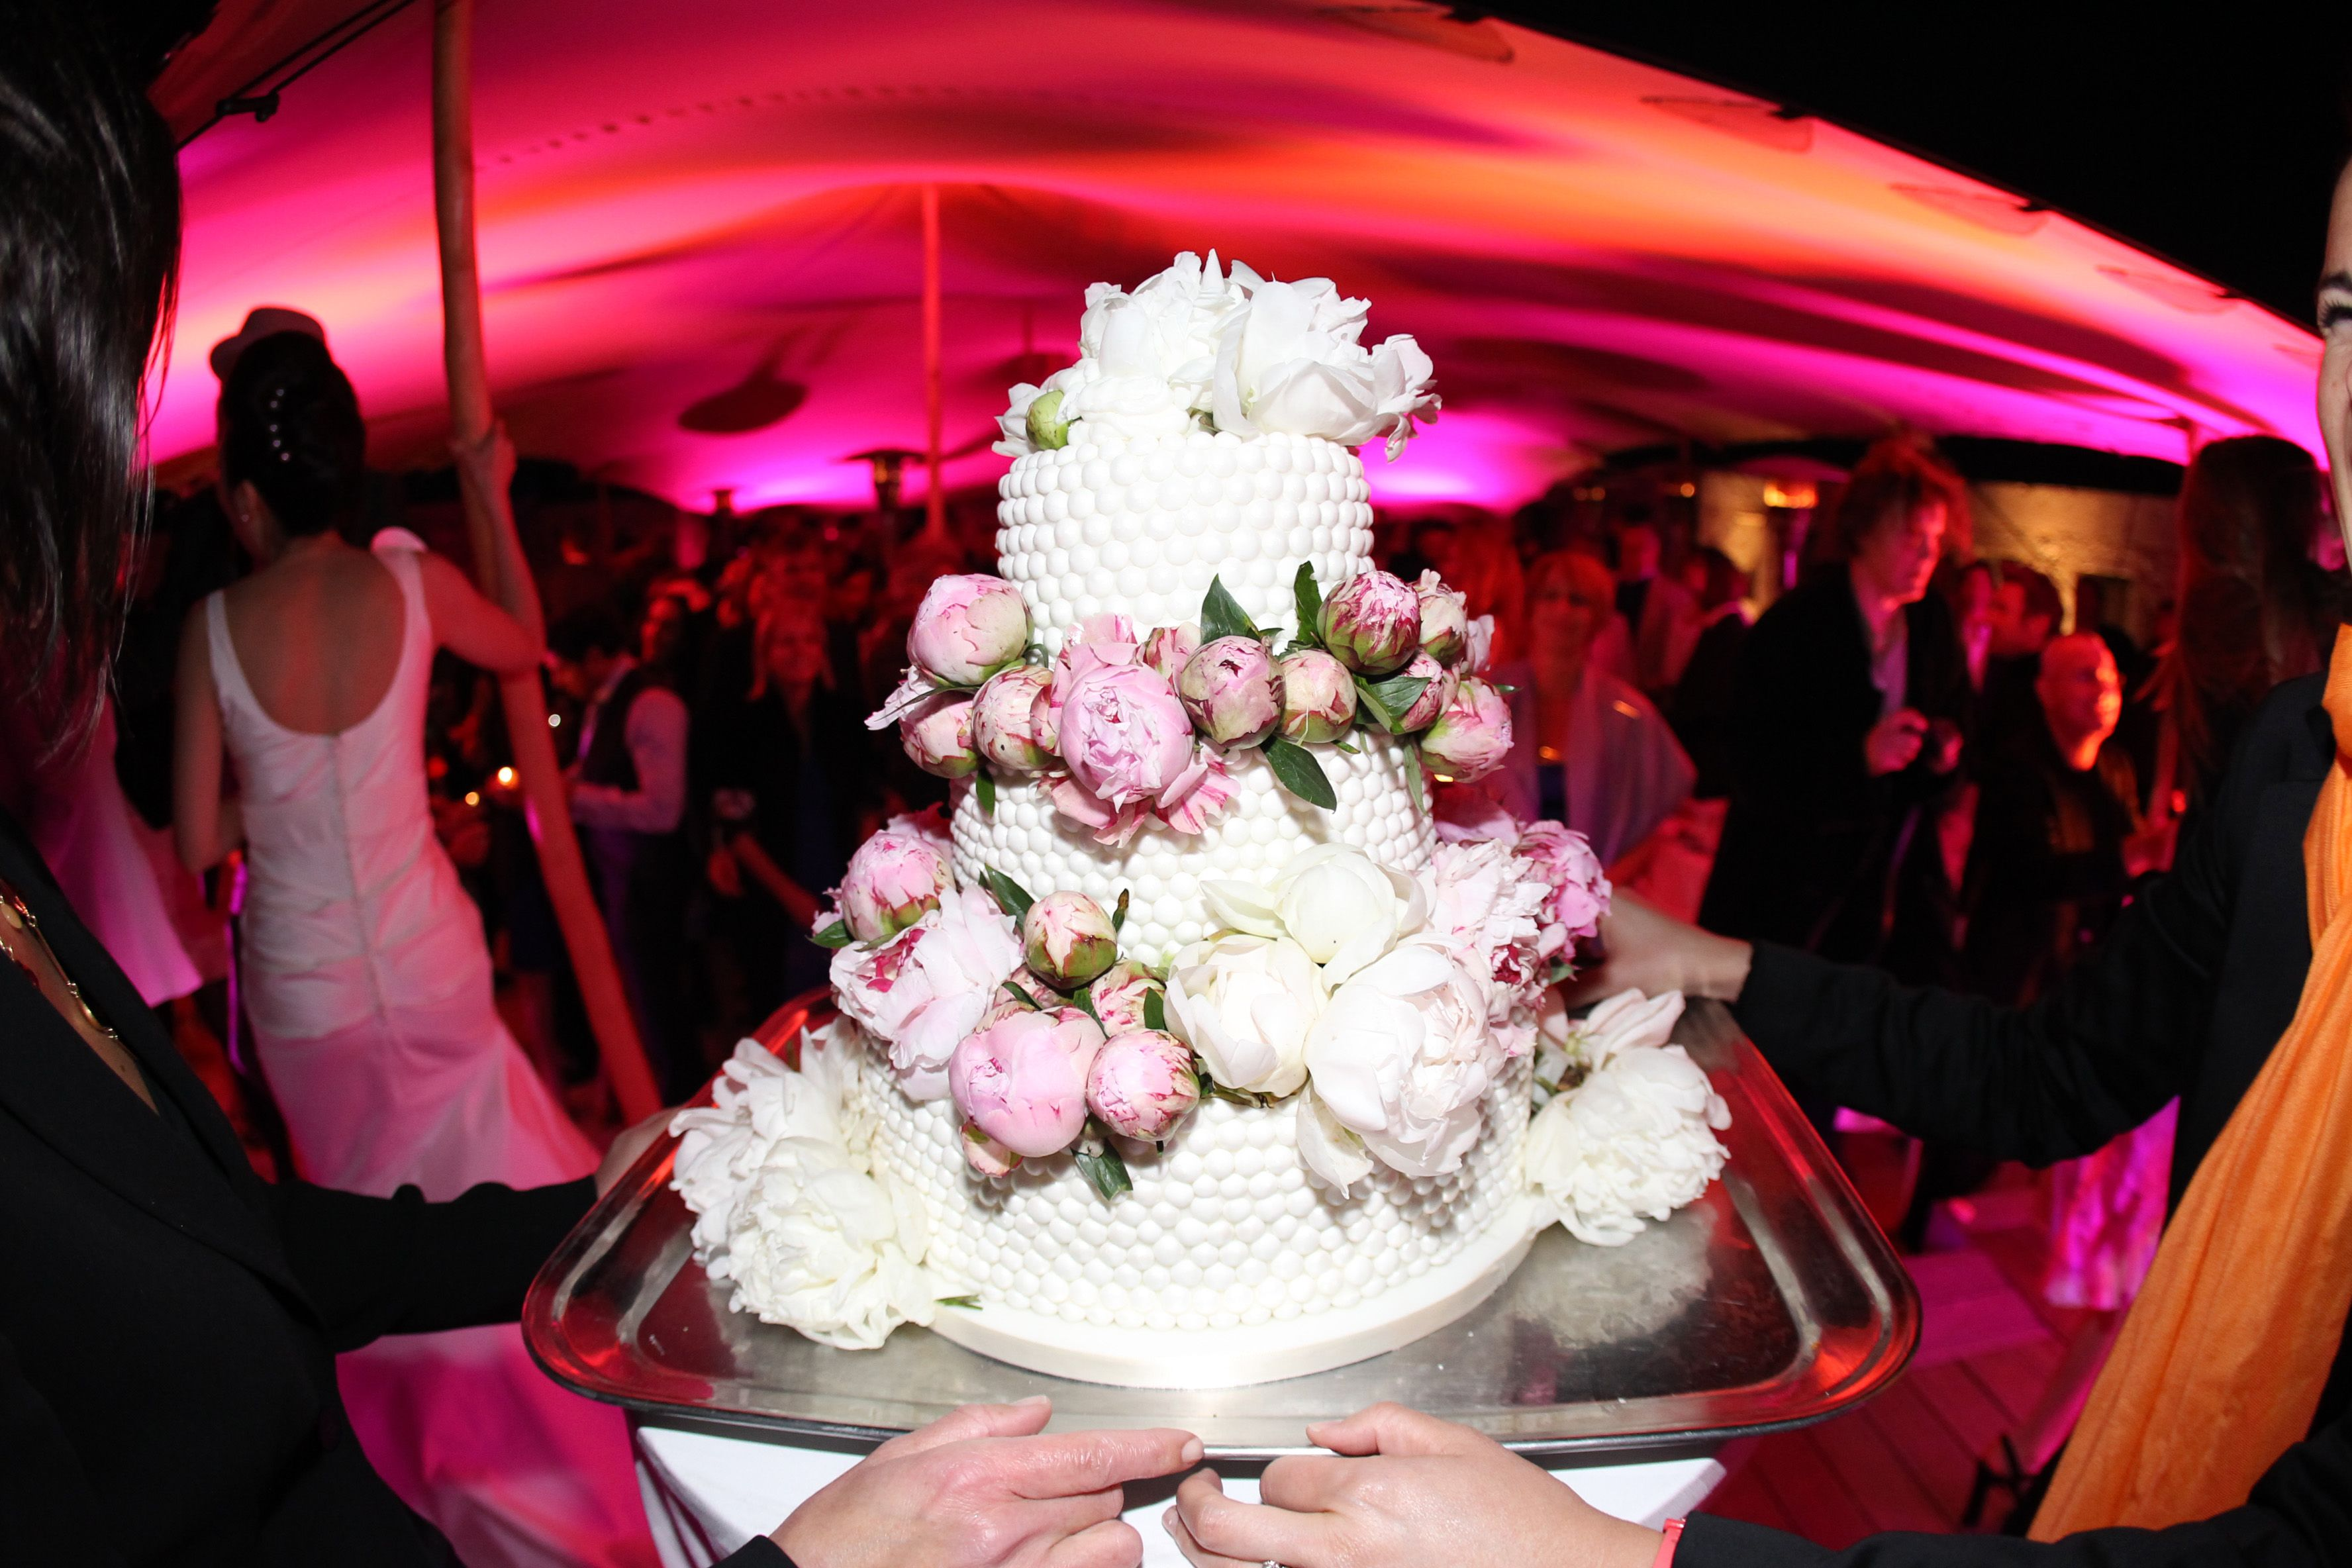 This is a cake cakes fun did for a wedding back in the summer the